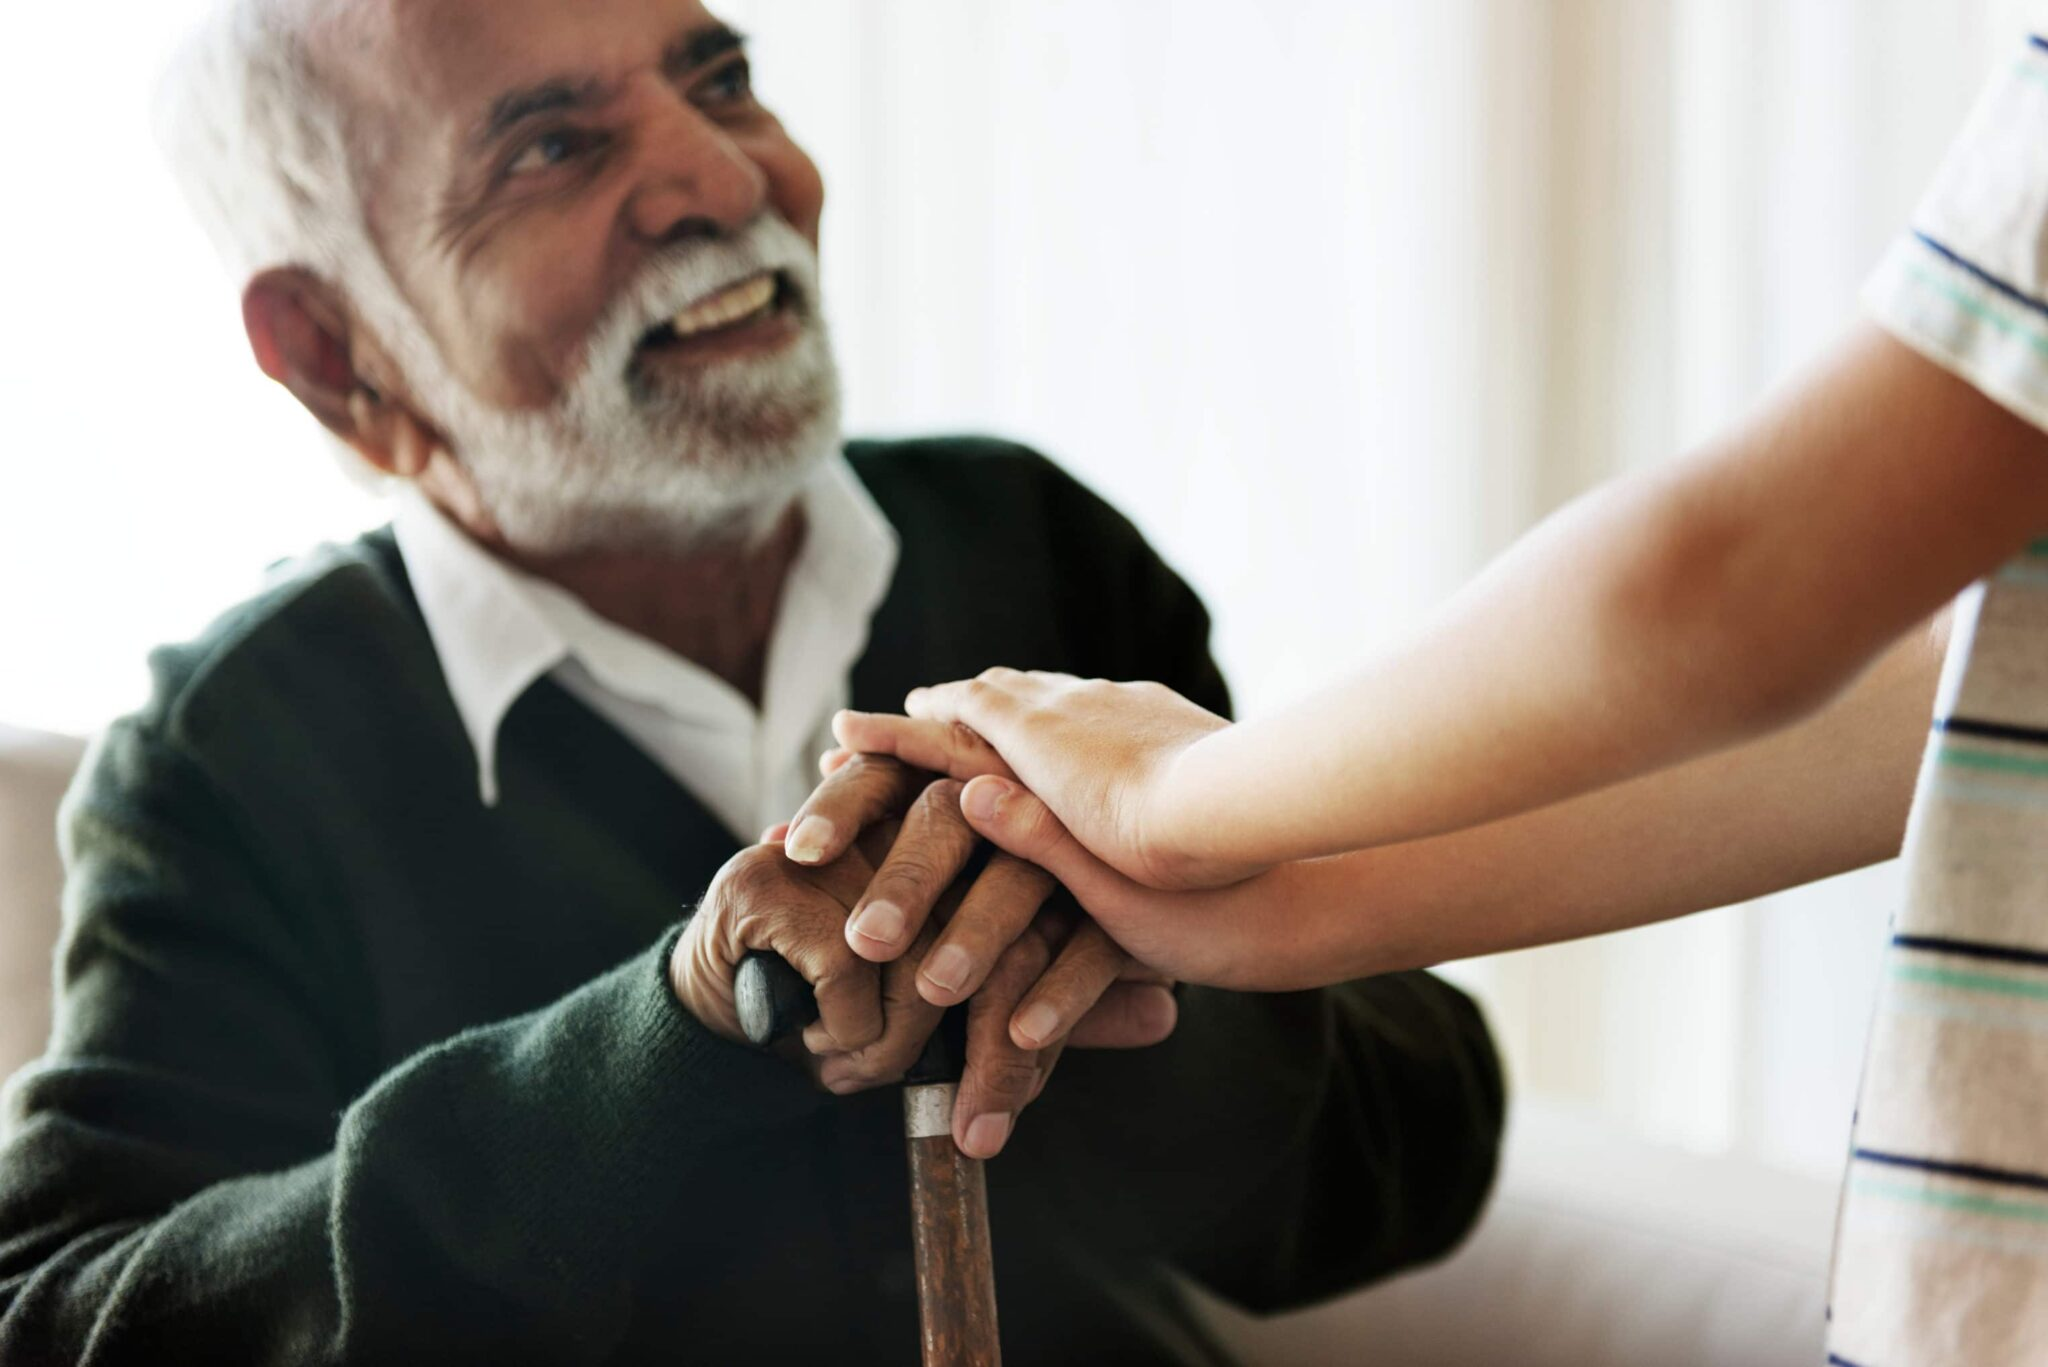 Child placing his hands over the hands of an older gentleman holding a cane